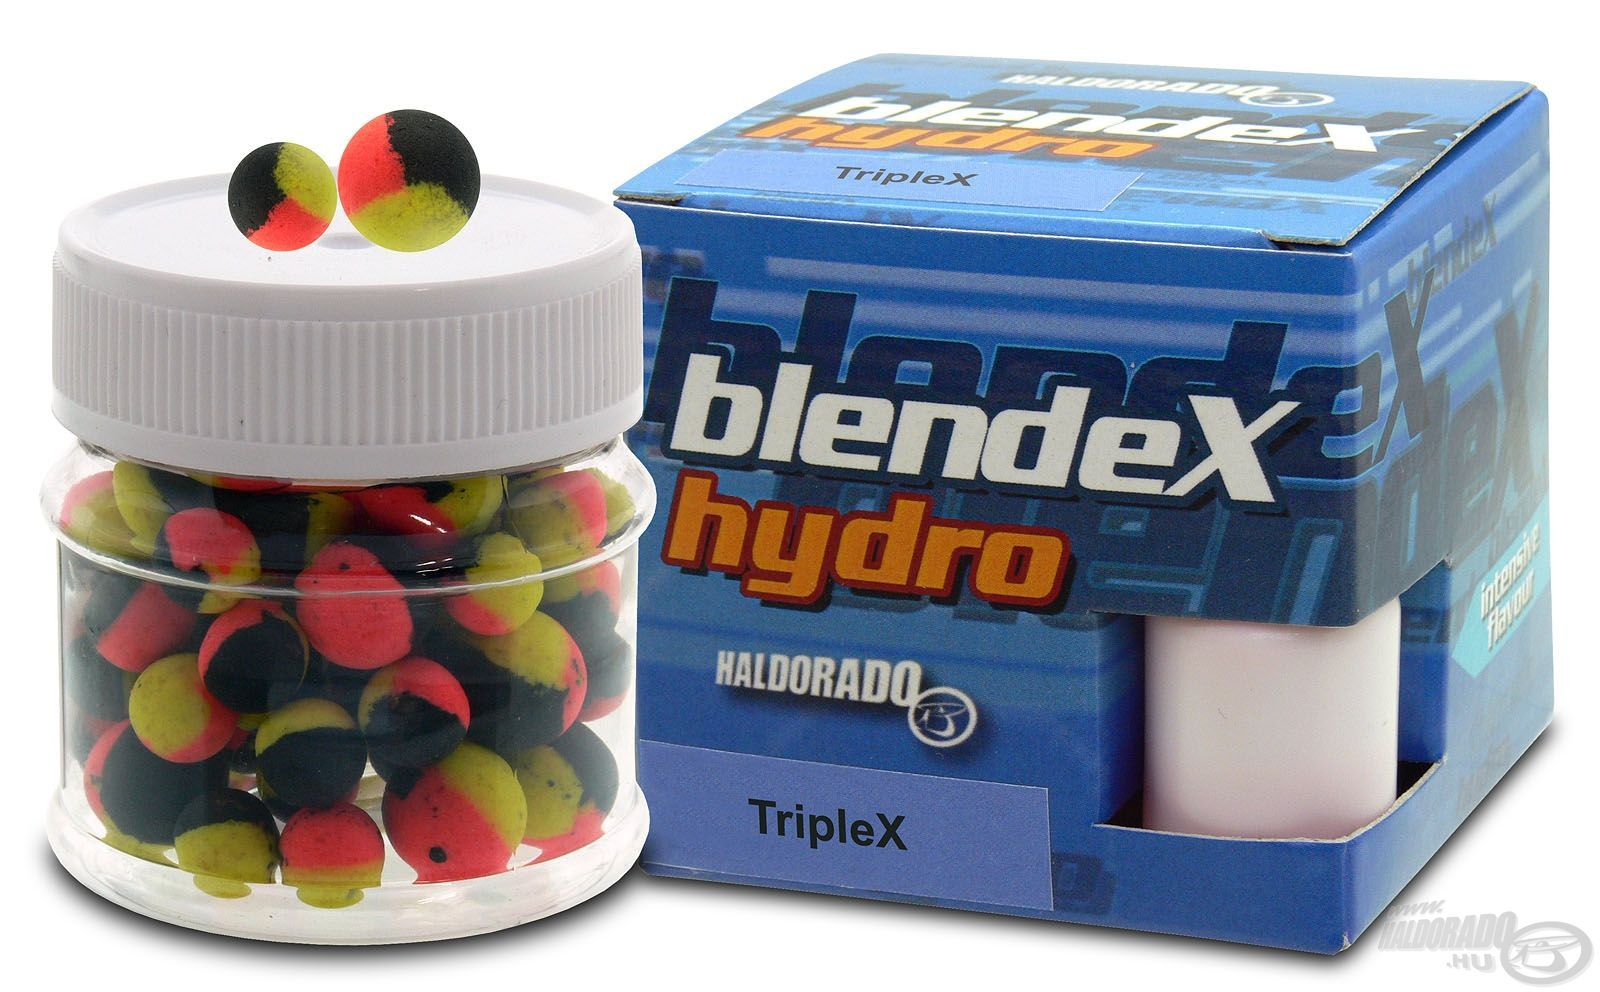 Haldorádó BlendeX Hydro Method